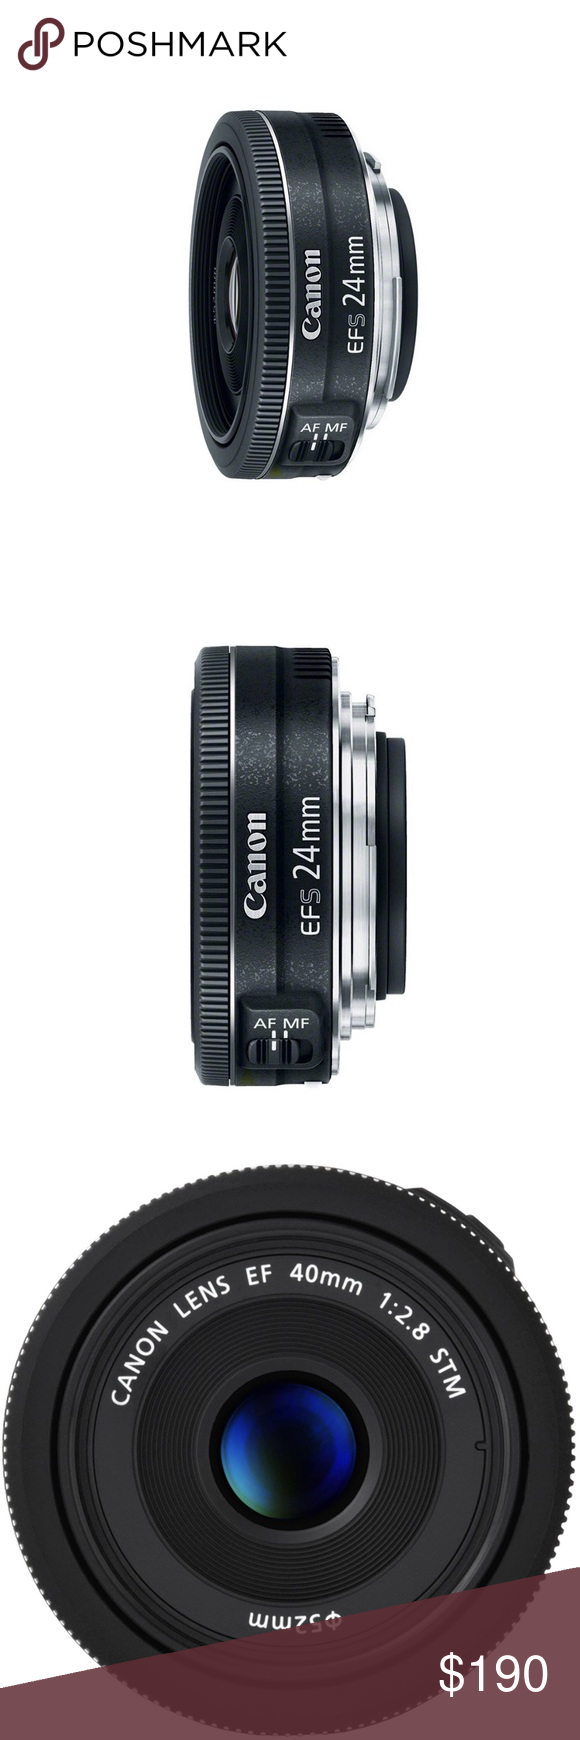 Canon Ef S 24mm F 2 8 Stm Lens New Wide Angle Lens For Canon Aps C Cameras Equivalent To 38mm On A Ful Canon Accessories Camera Focal Length Clothes Design